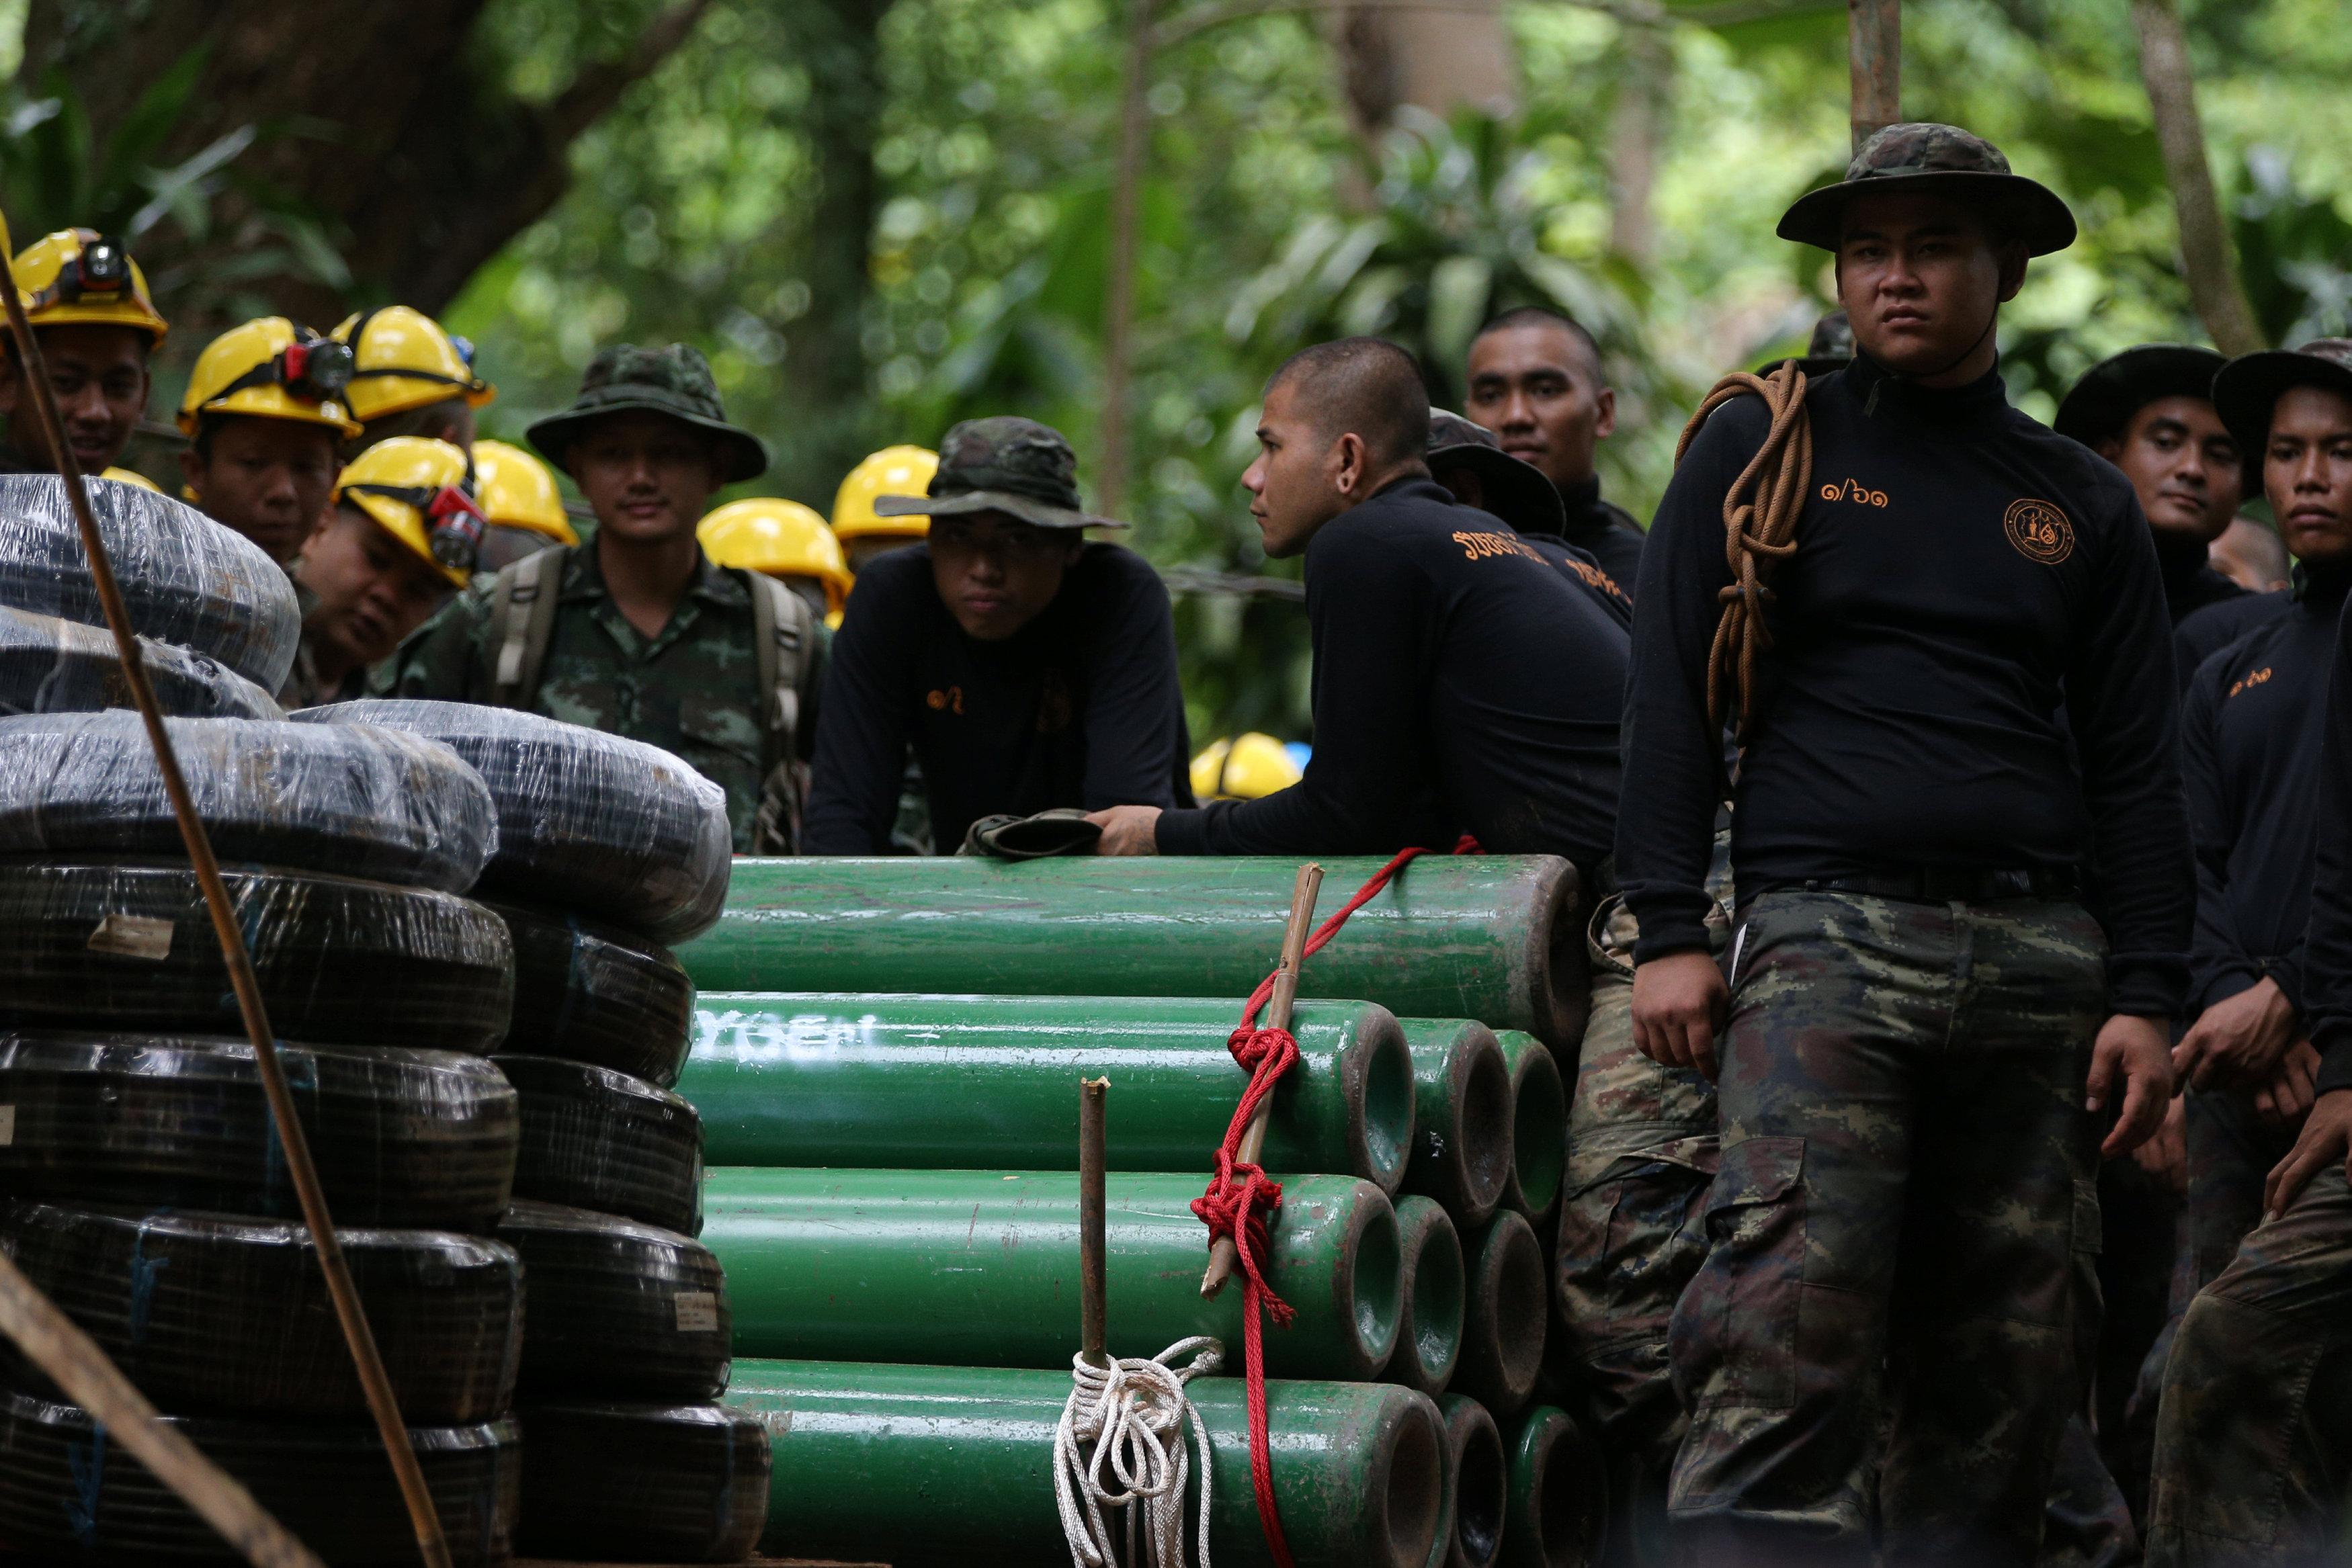 Military personnel gather near oxygen tanks near the Tham Luang cave complex, where 12 boys and their soccer coach are trapped, in the northern province of Chiang Rai, Thailand, July 6, 2018. Athit Perawongmetha